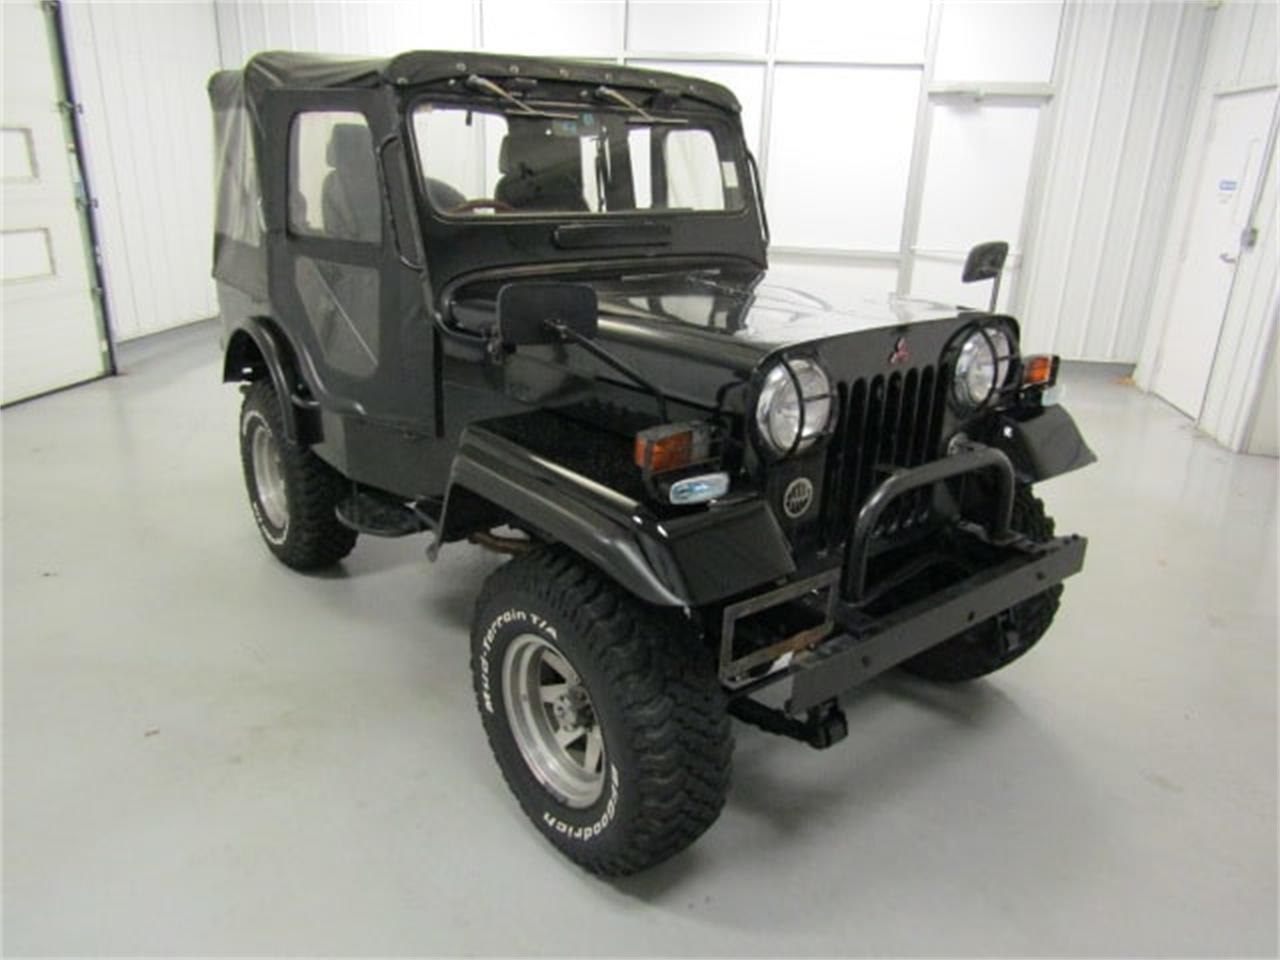 Large Picture of '85 Jeep located in Virginia Offered by Duncan Imports & Classic Cars - LNX4